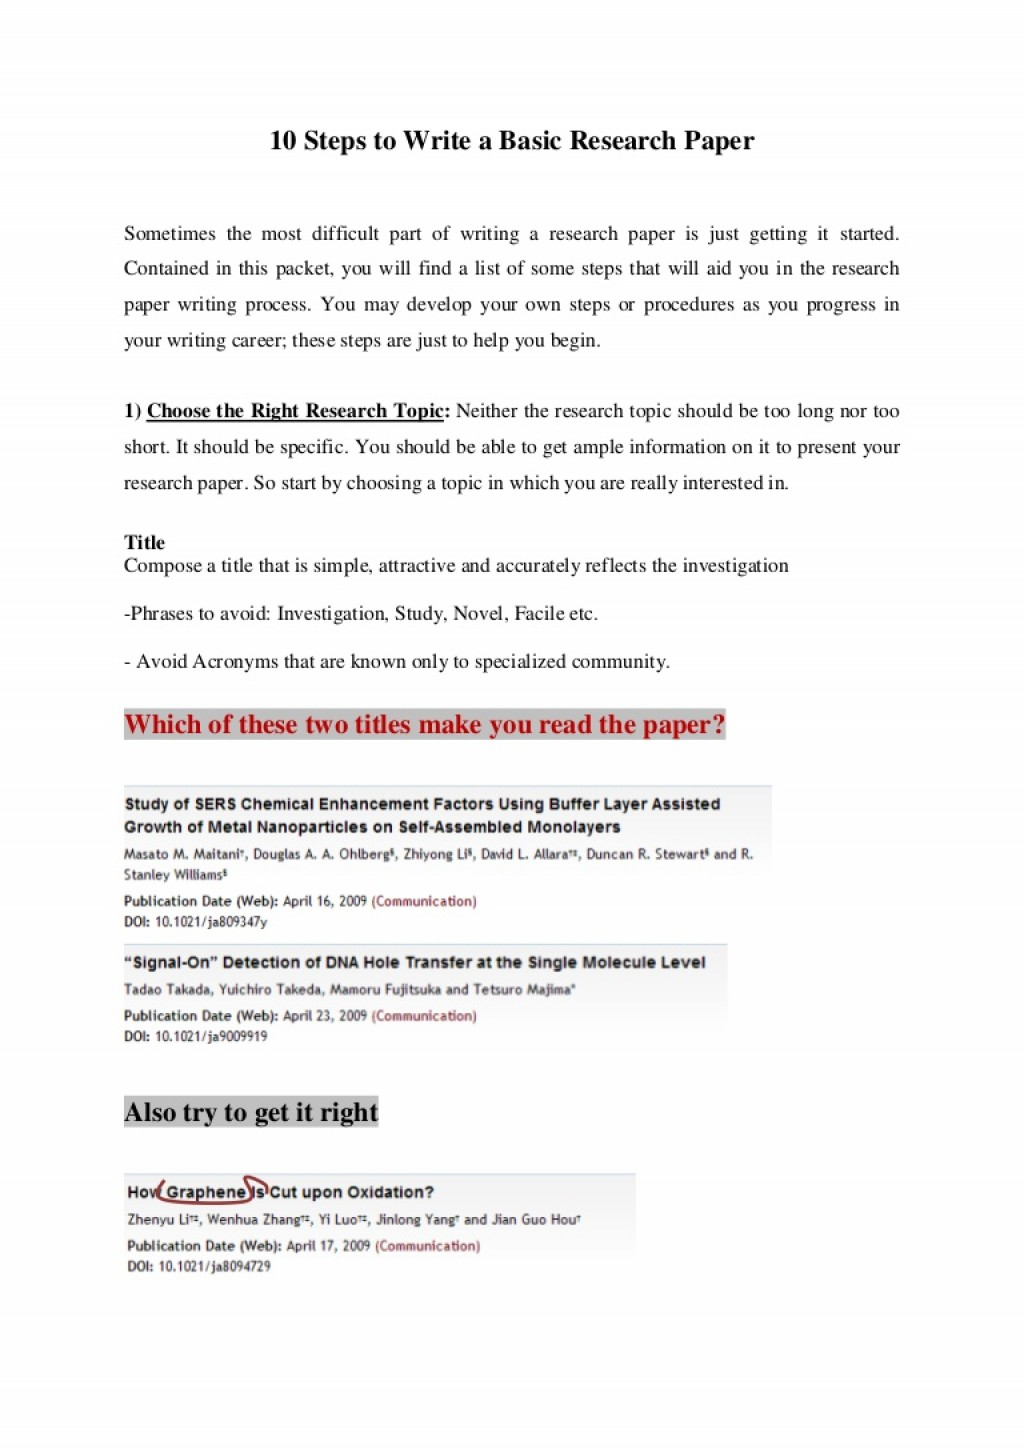 001 Research Paper 10stepstowriteabasicresearchpaper Thumbnail Steps For Writing Unforgettable 10 A In The Markman Pdf To Write Basic Large